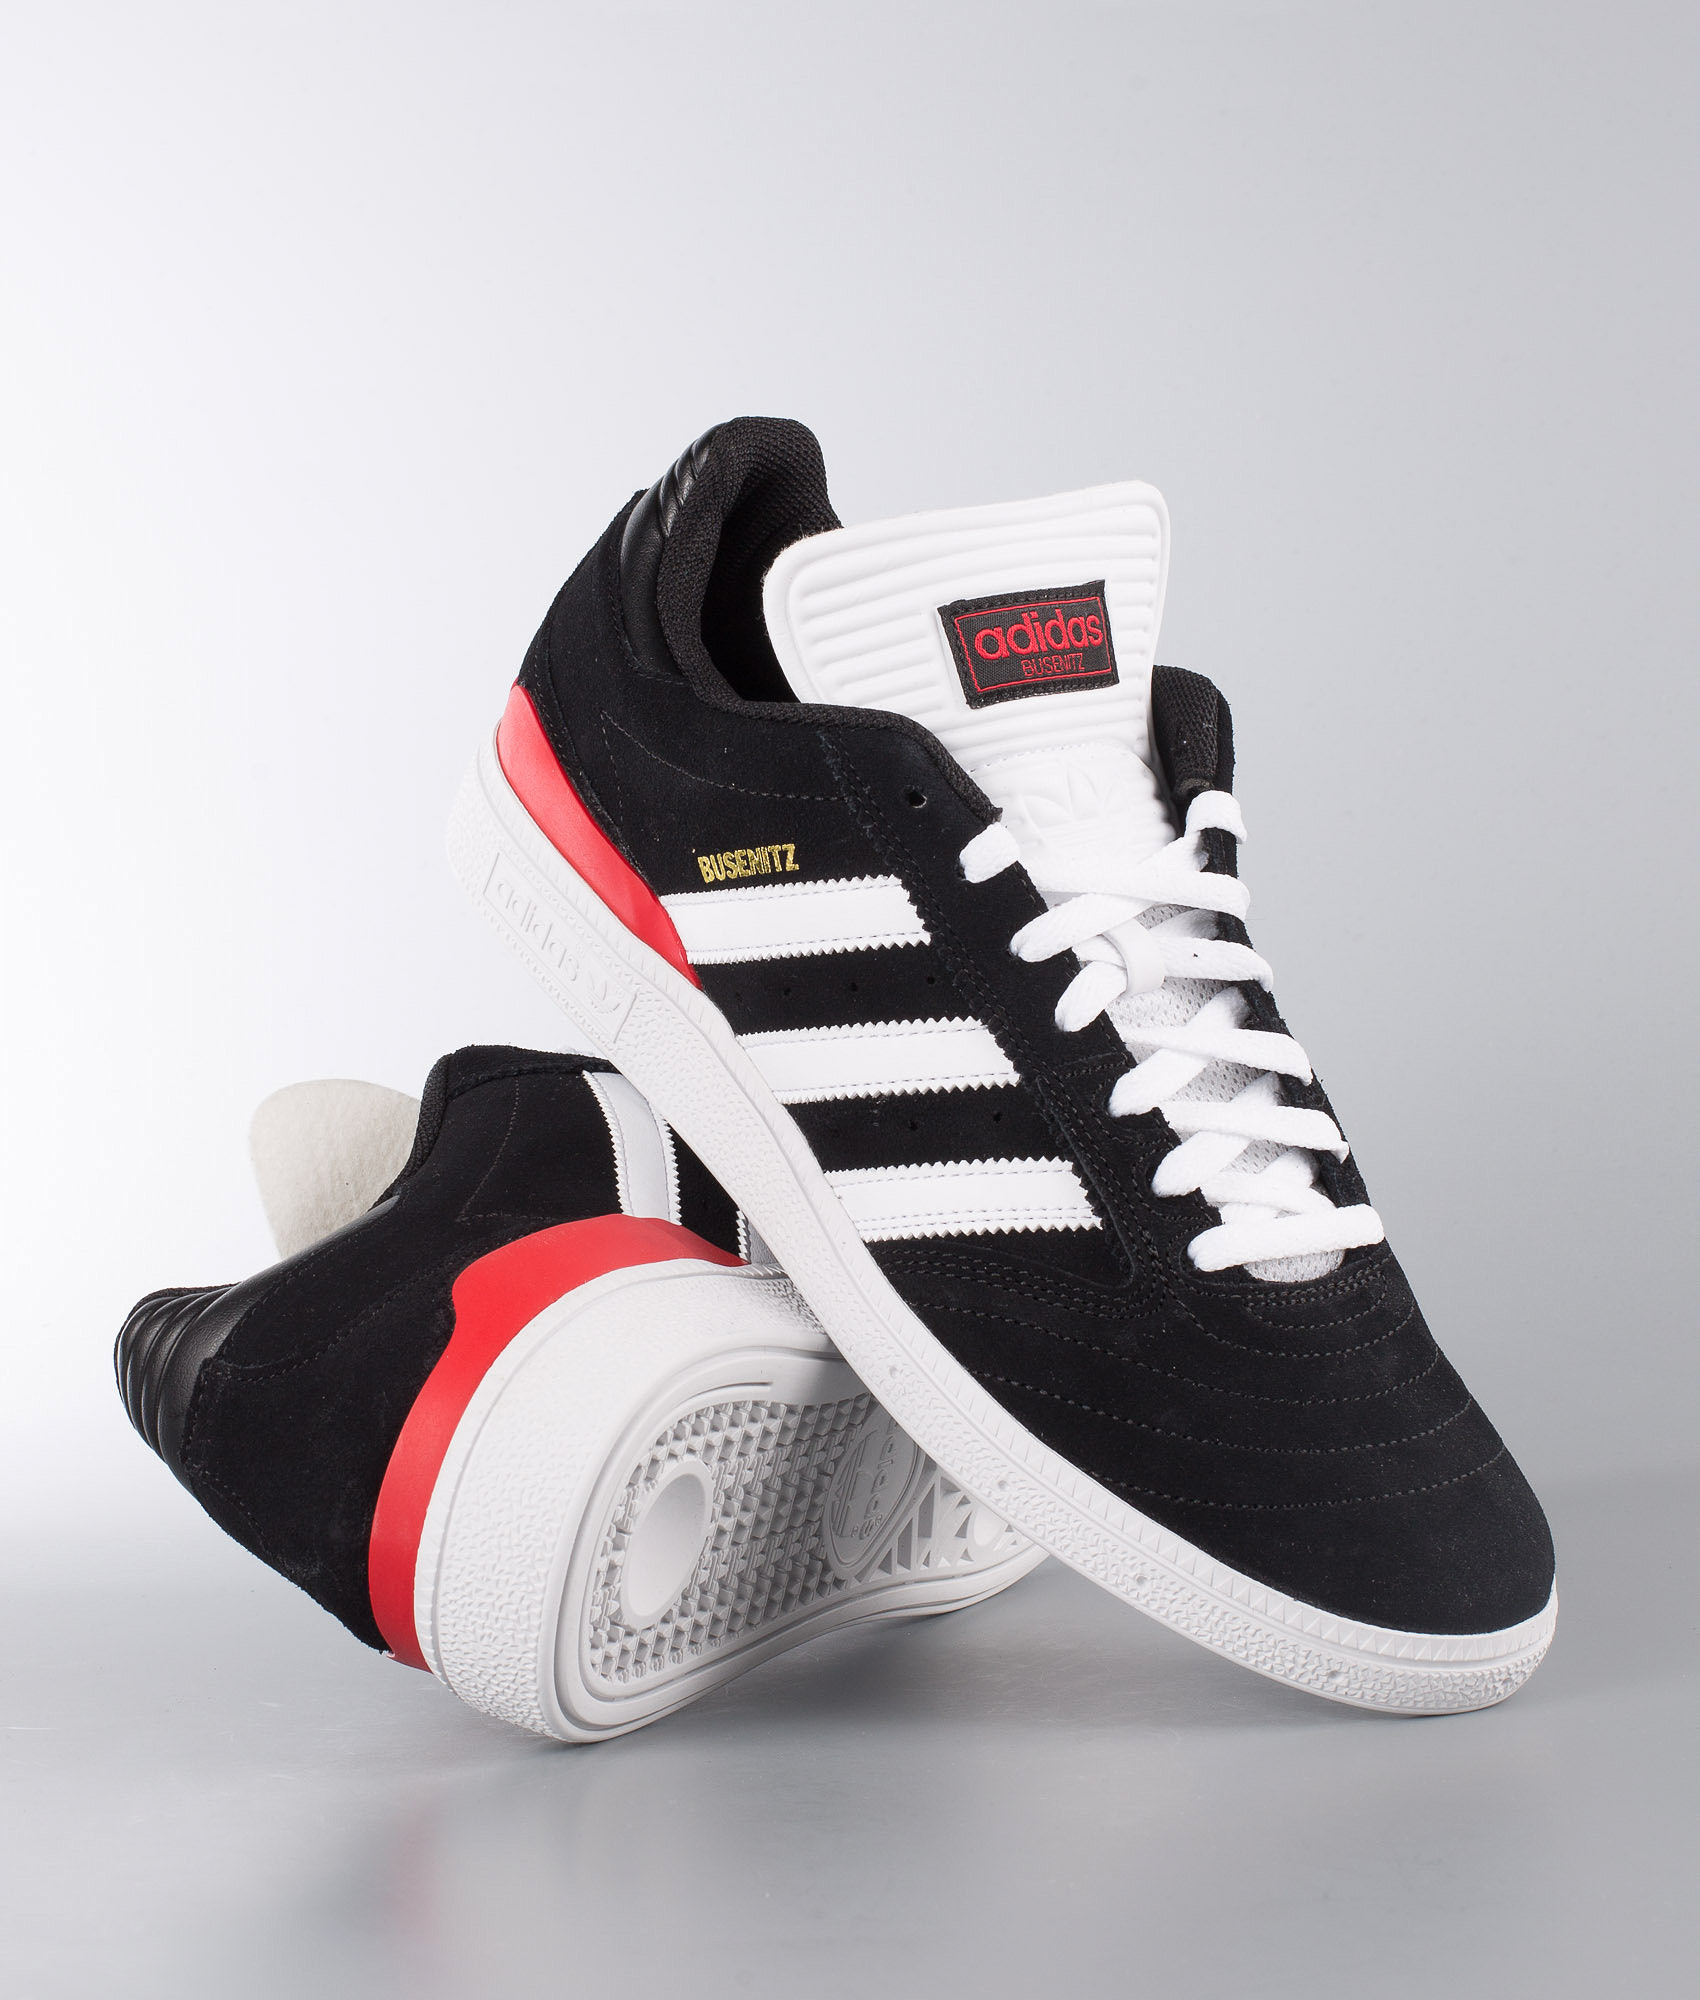 8b49b2916dcaa Adidas Skateboarding Busenitz Shoes Core Black/Ftwr White/Scarlet ...